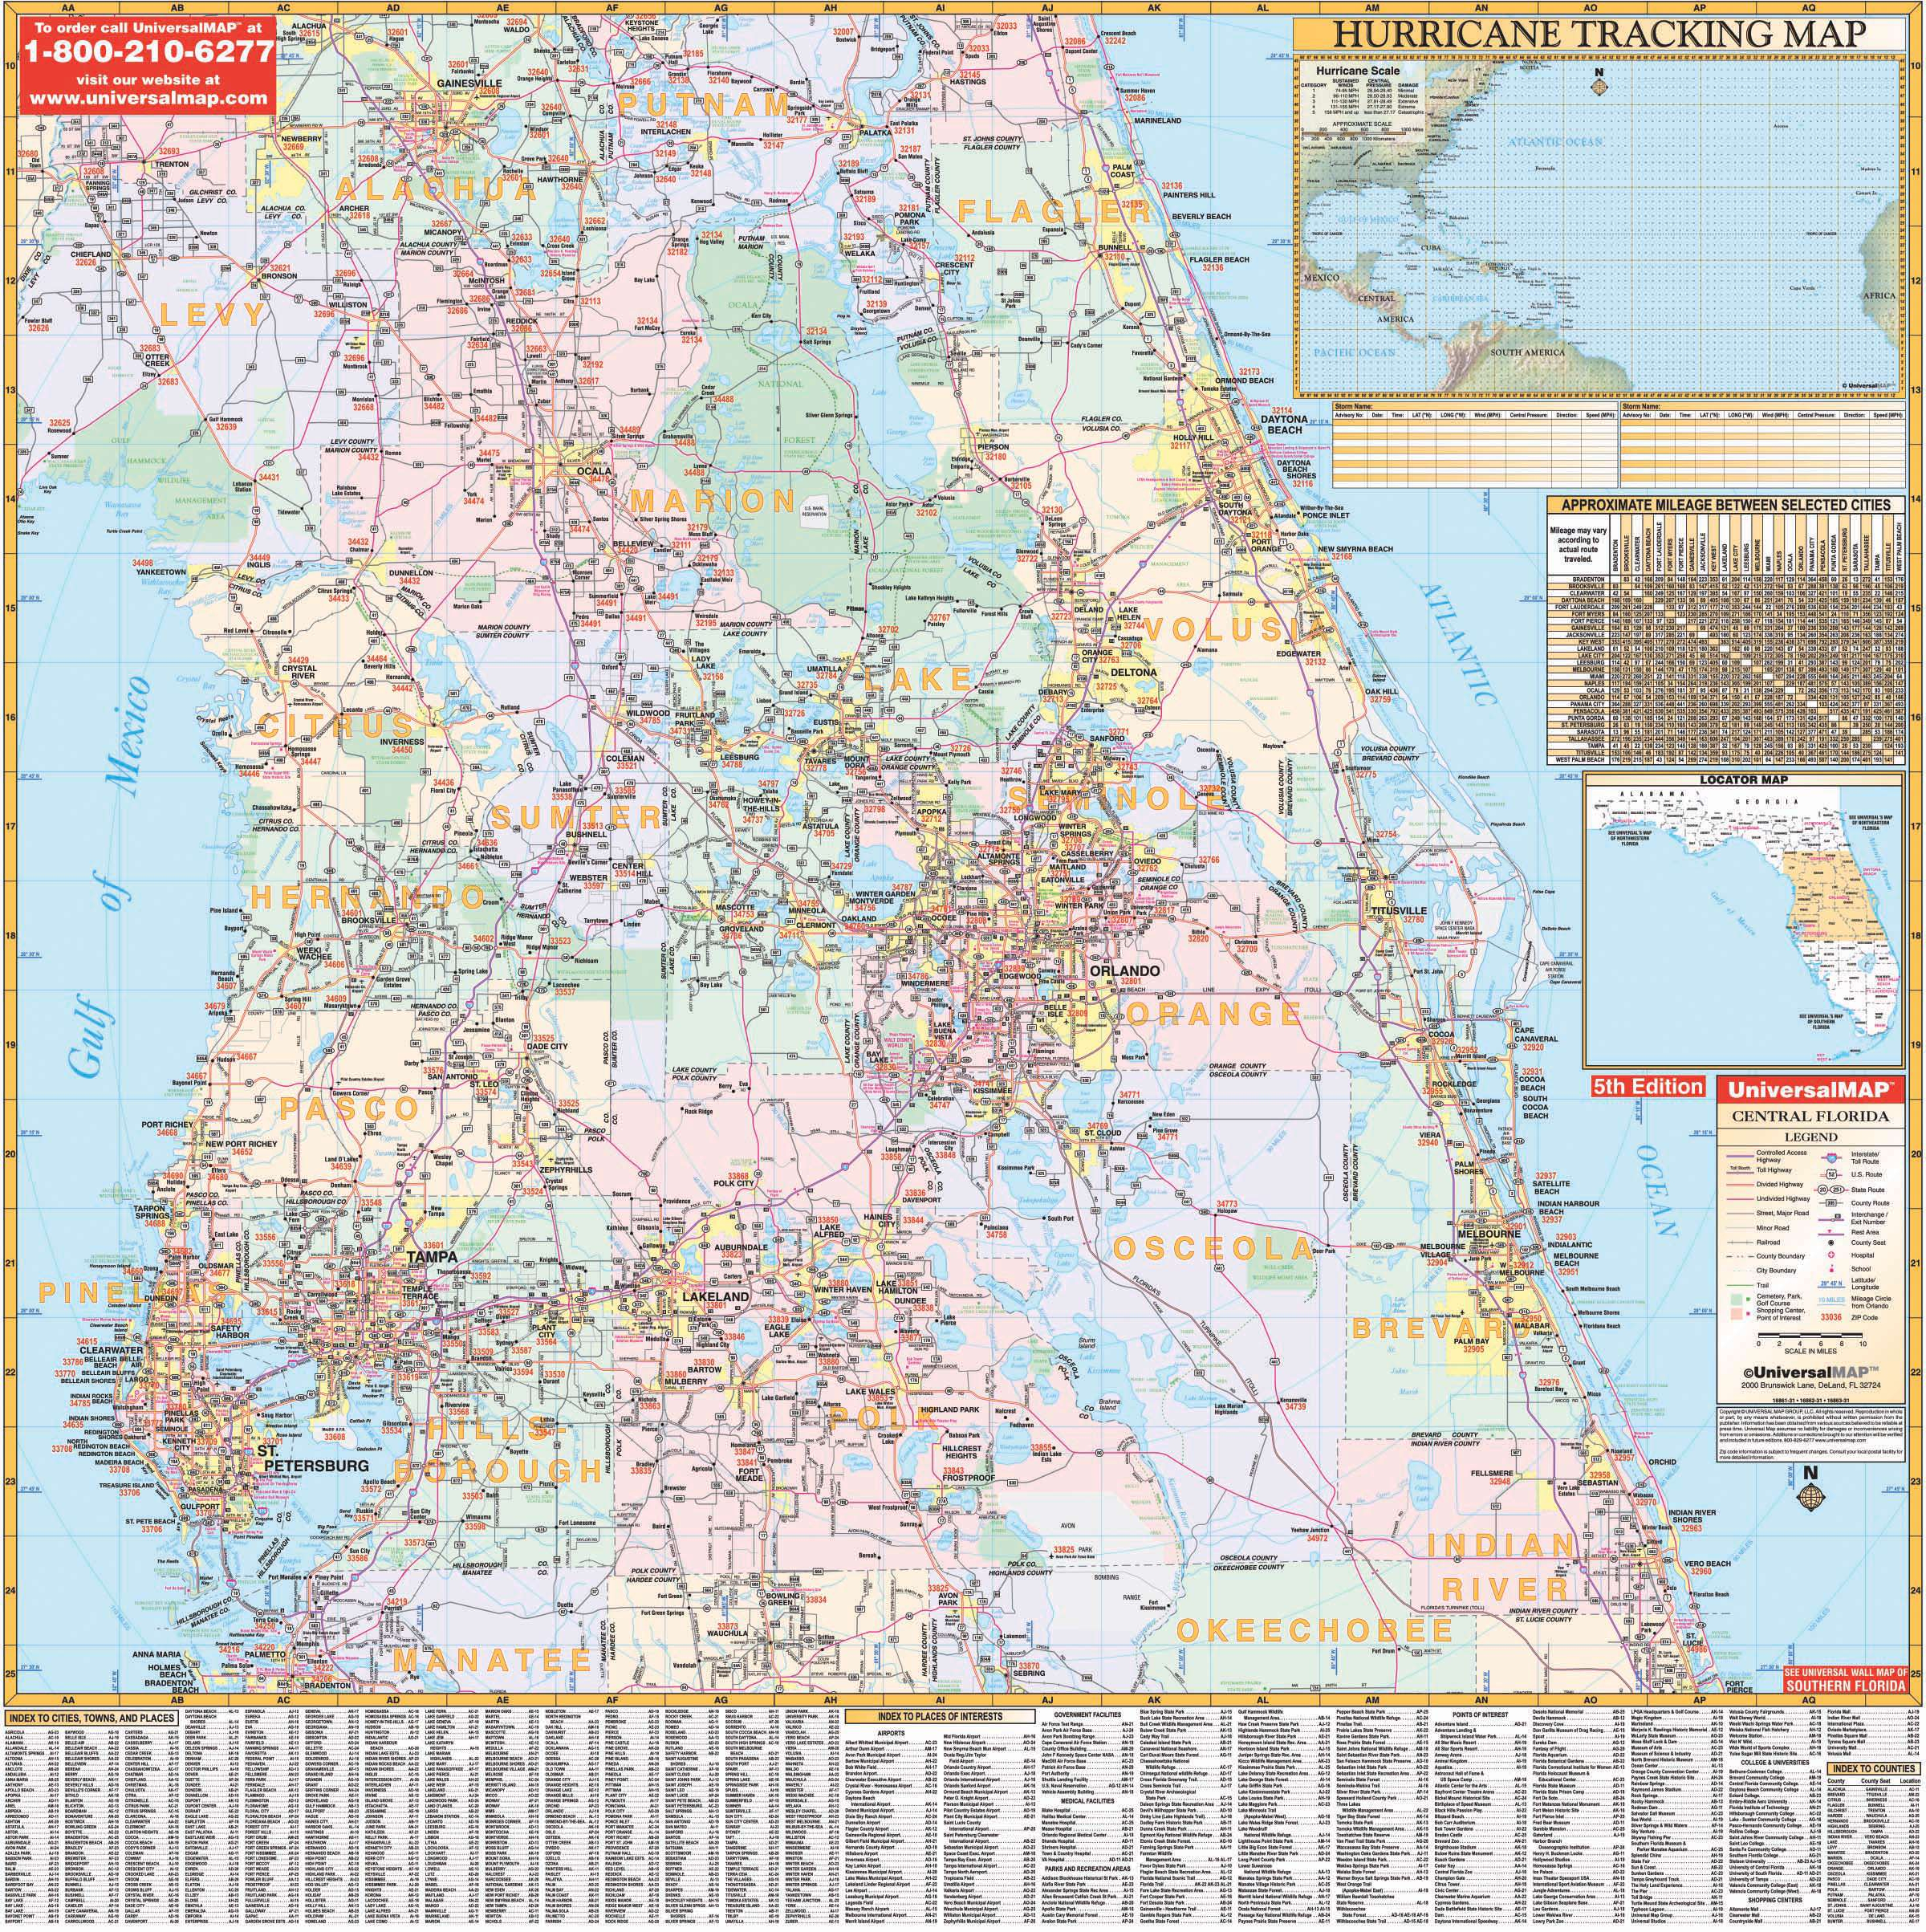 Florida State Central Wall Map – Kappa Map Group - Florida Wall Maps For Sale